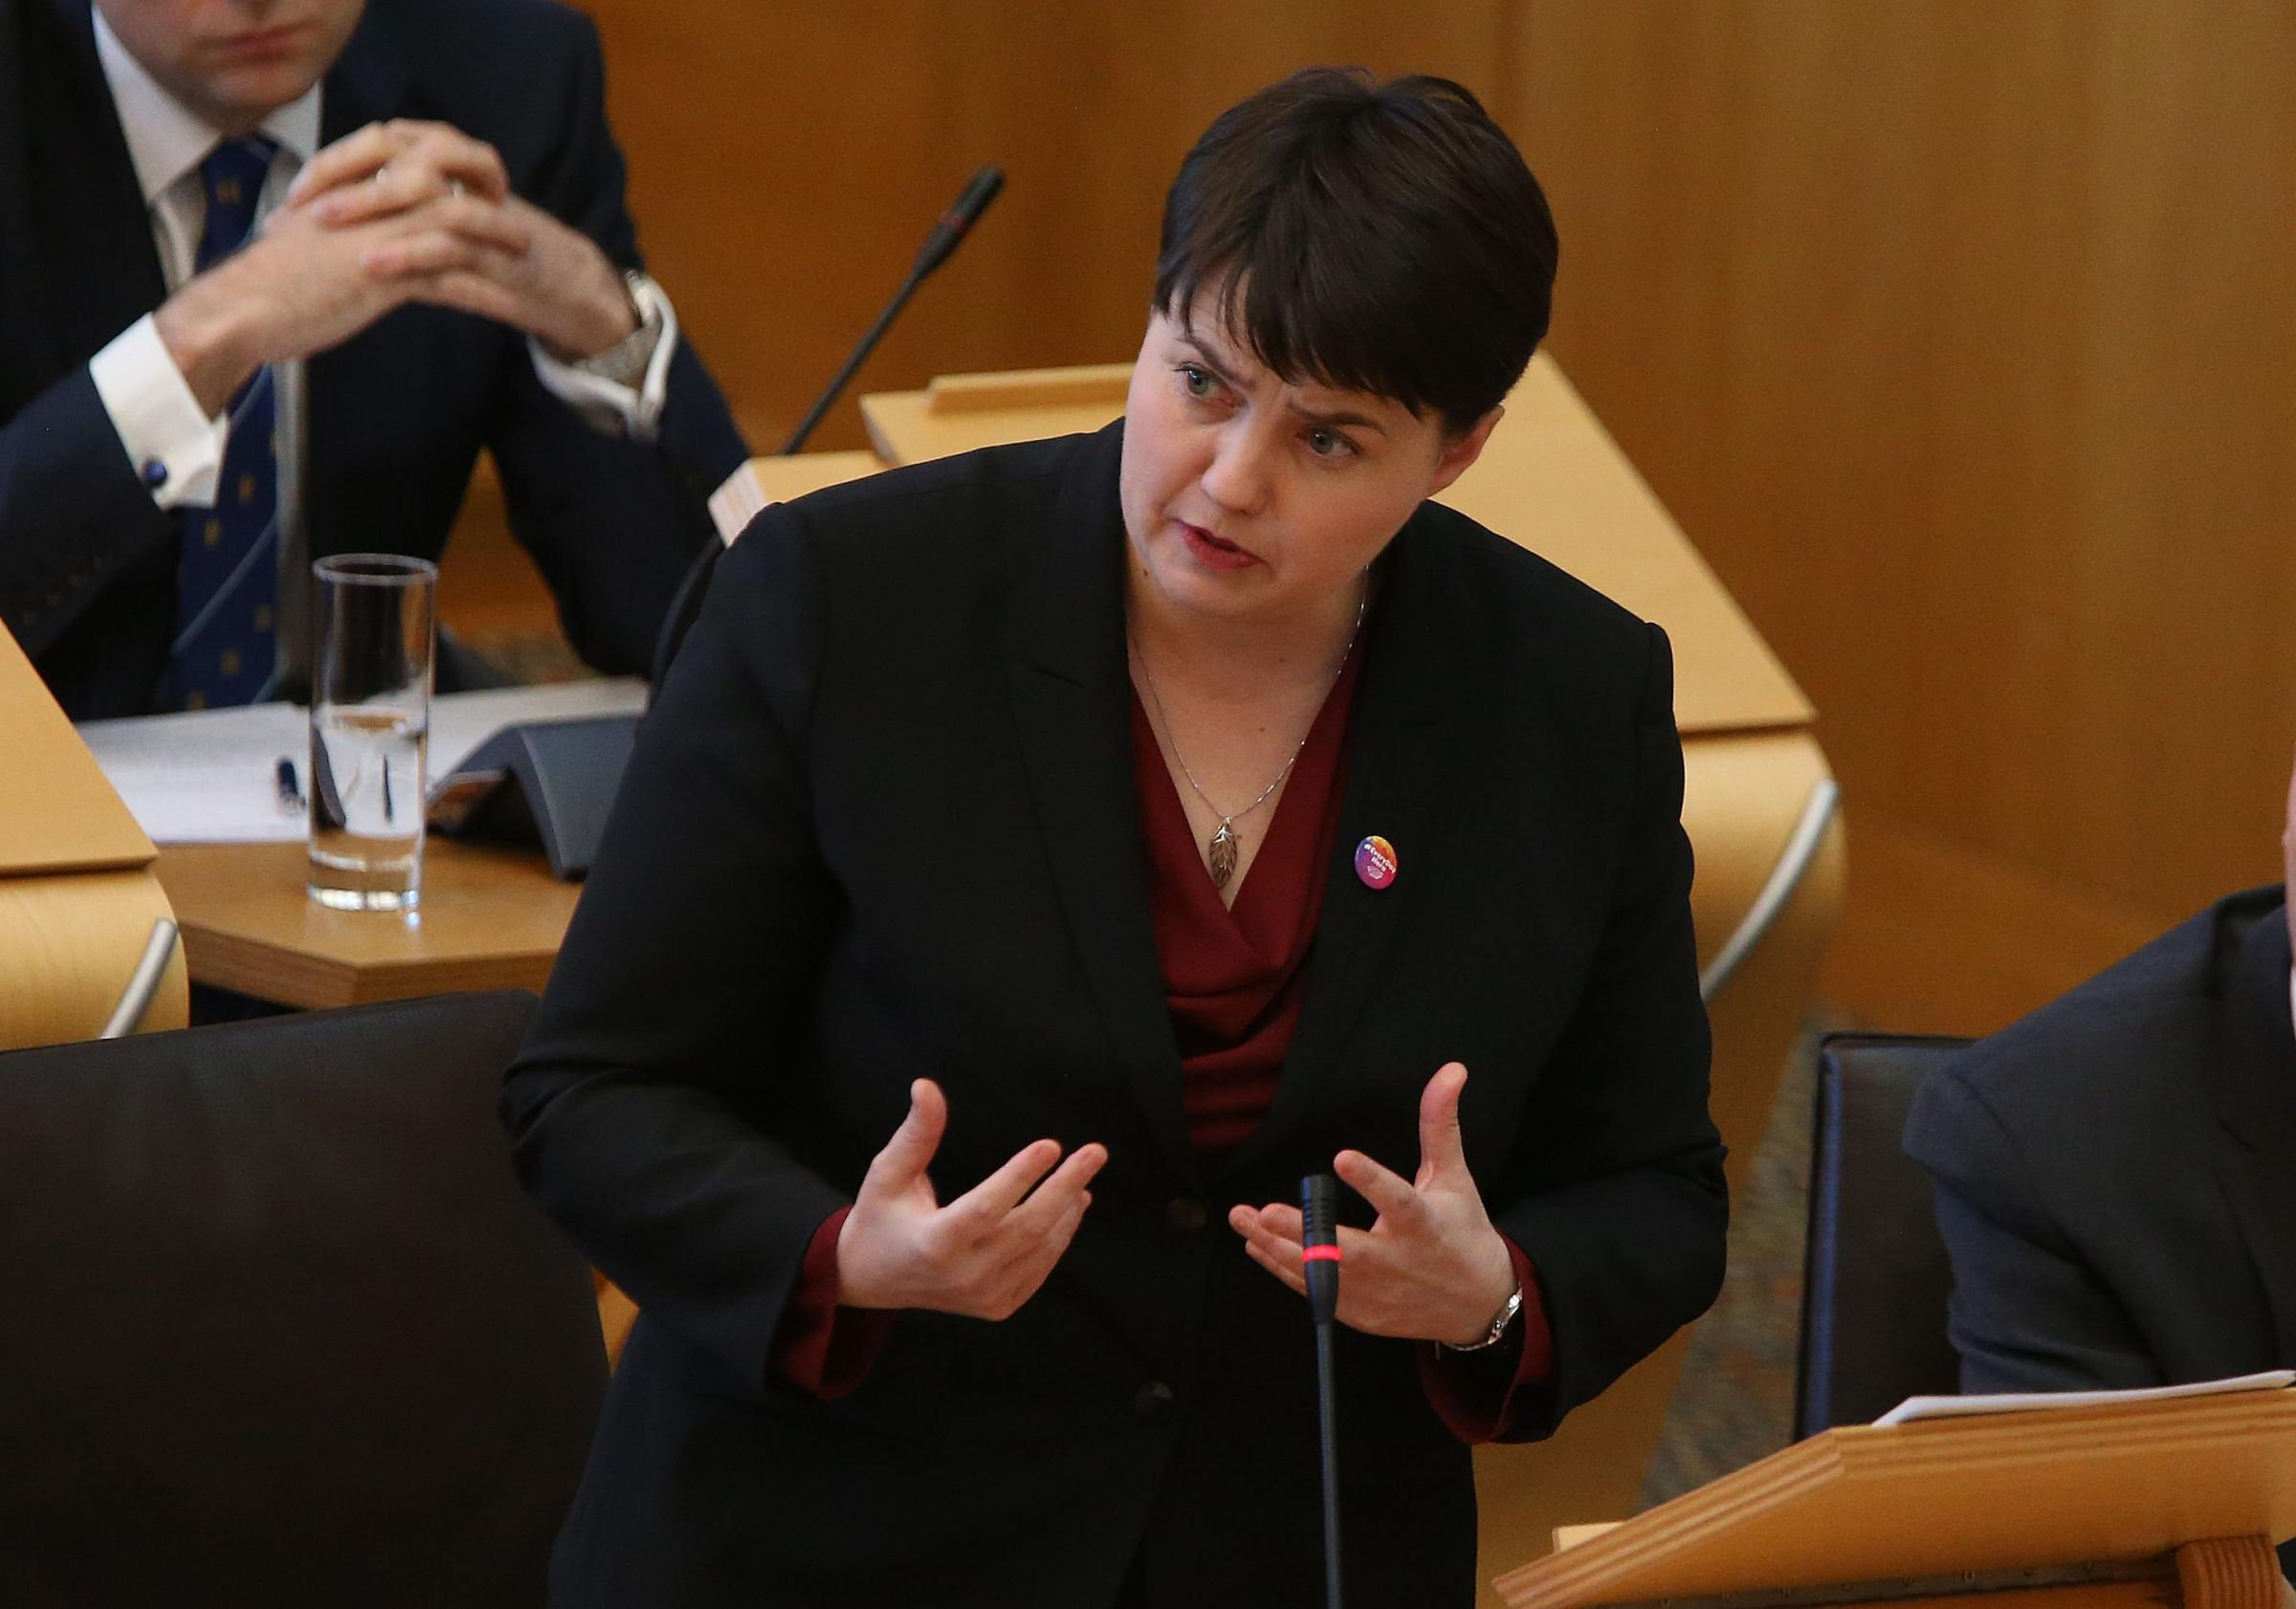 Ruth Davidson claimed Nicola Sturgeon lacks a 'domestic record worth talking about'